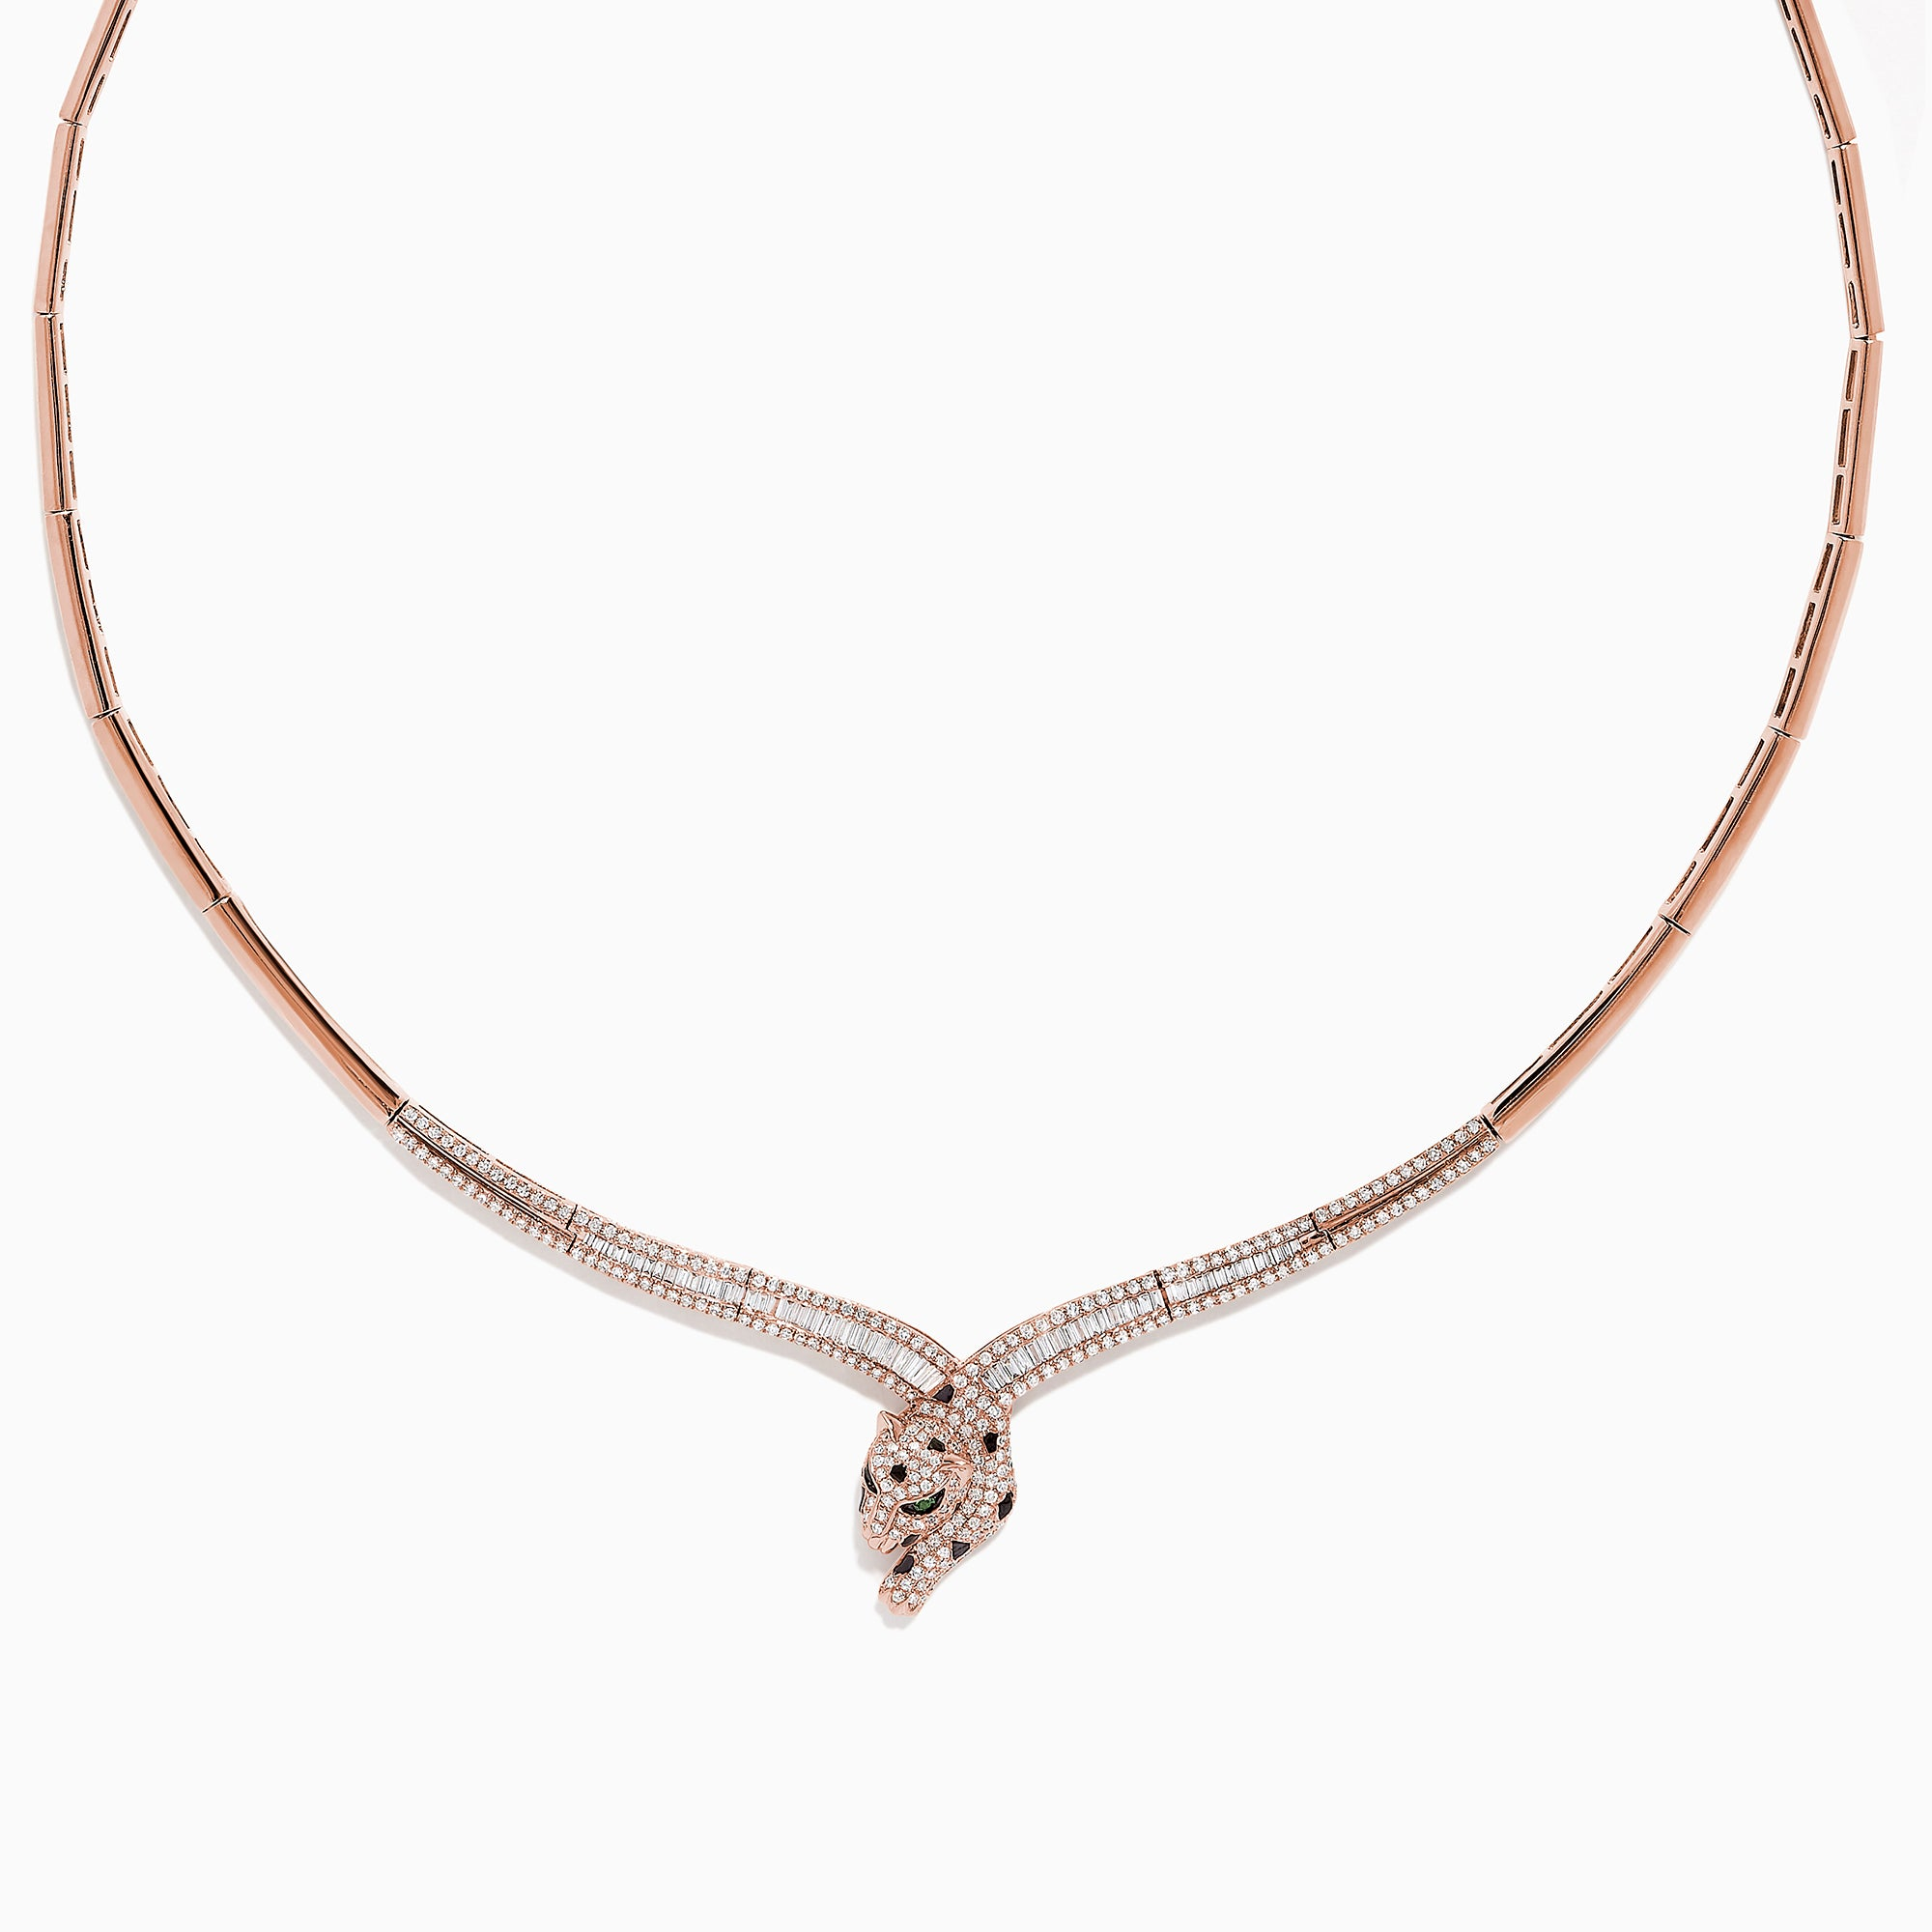 Effy Signature 14K Rose Gold Diamond Panther Necklace, 1.52 TCW